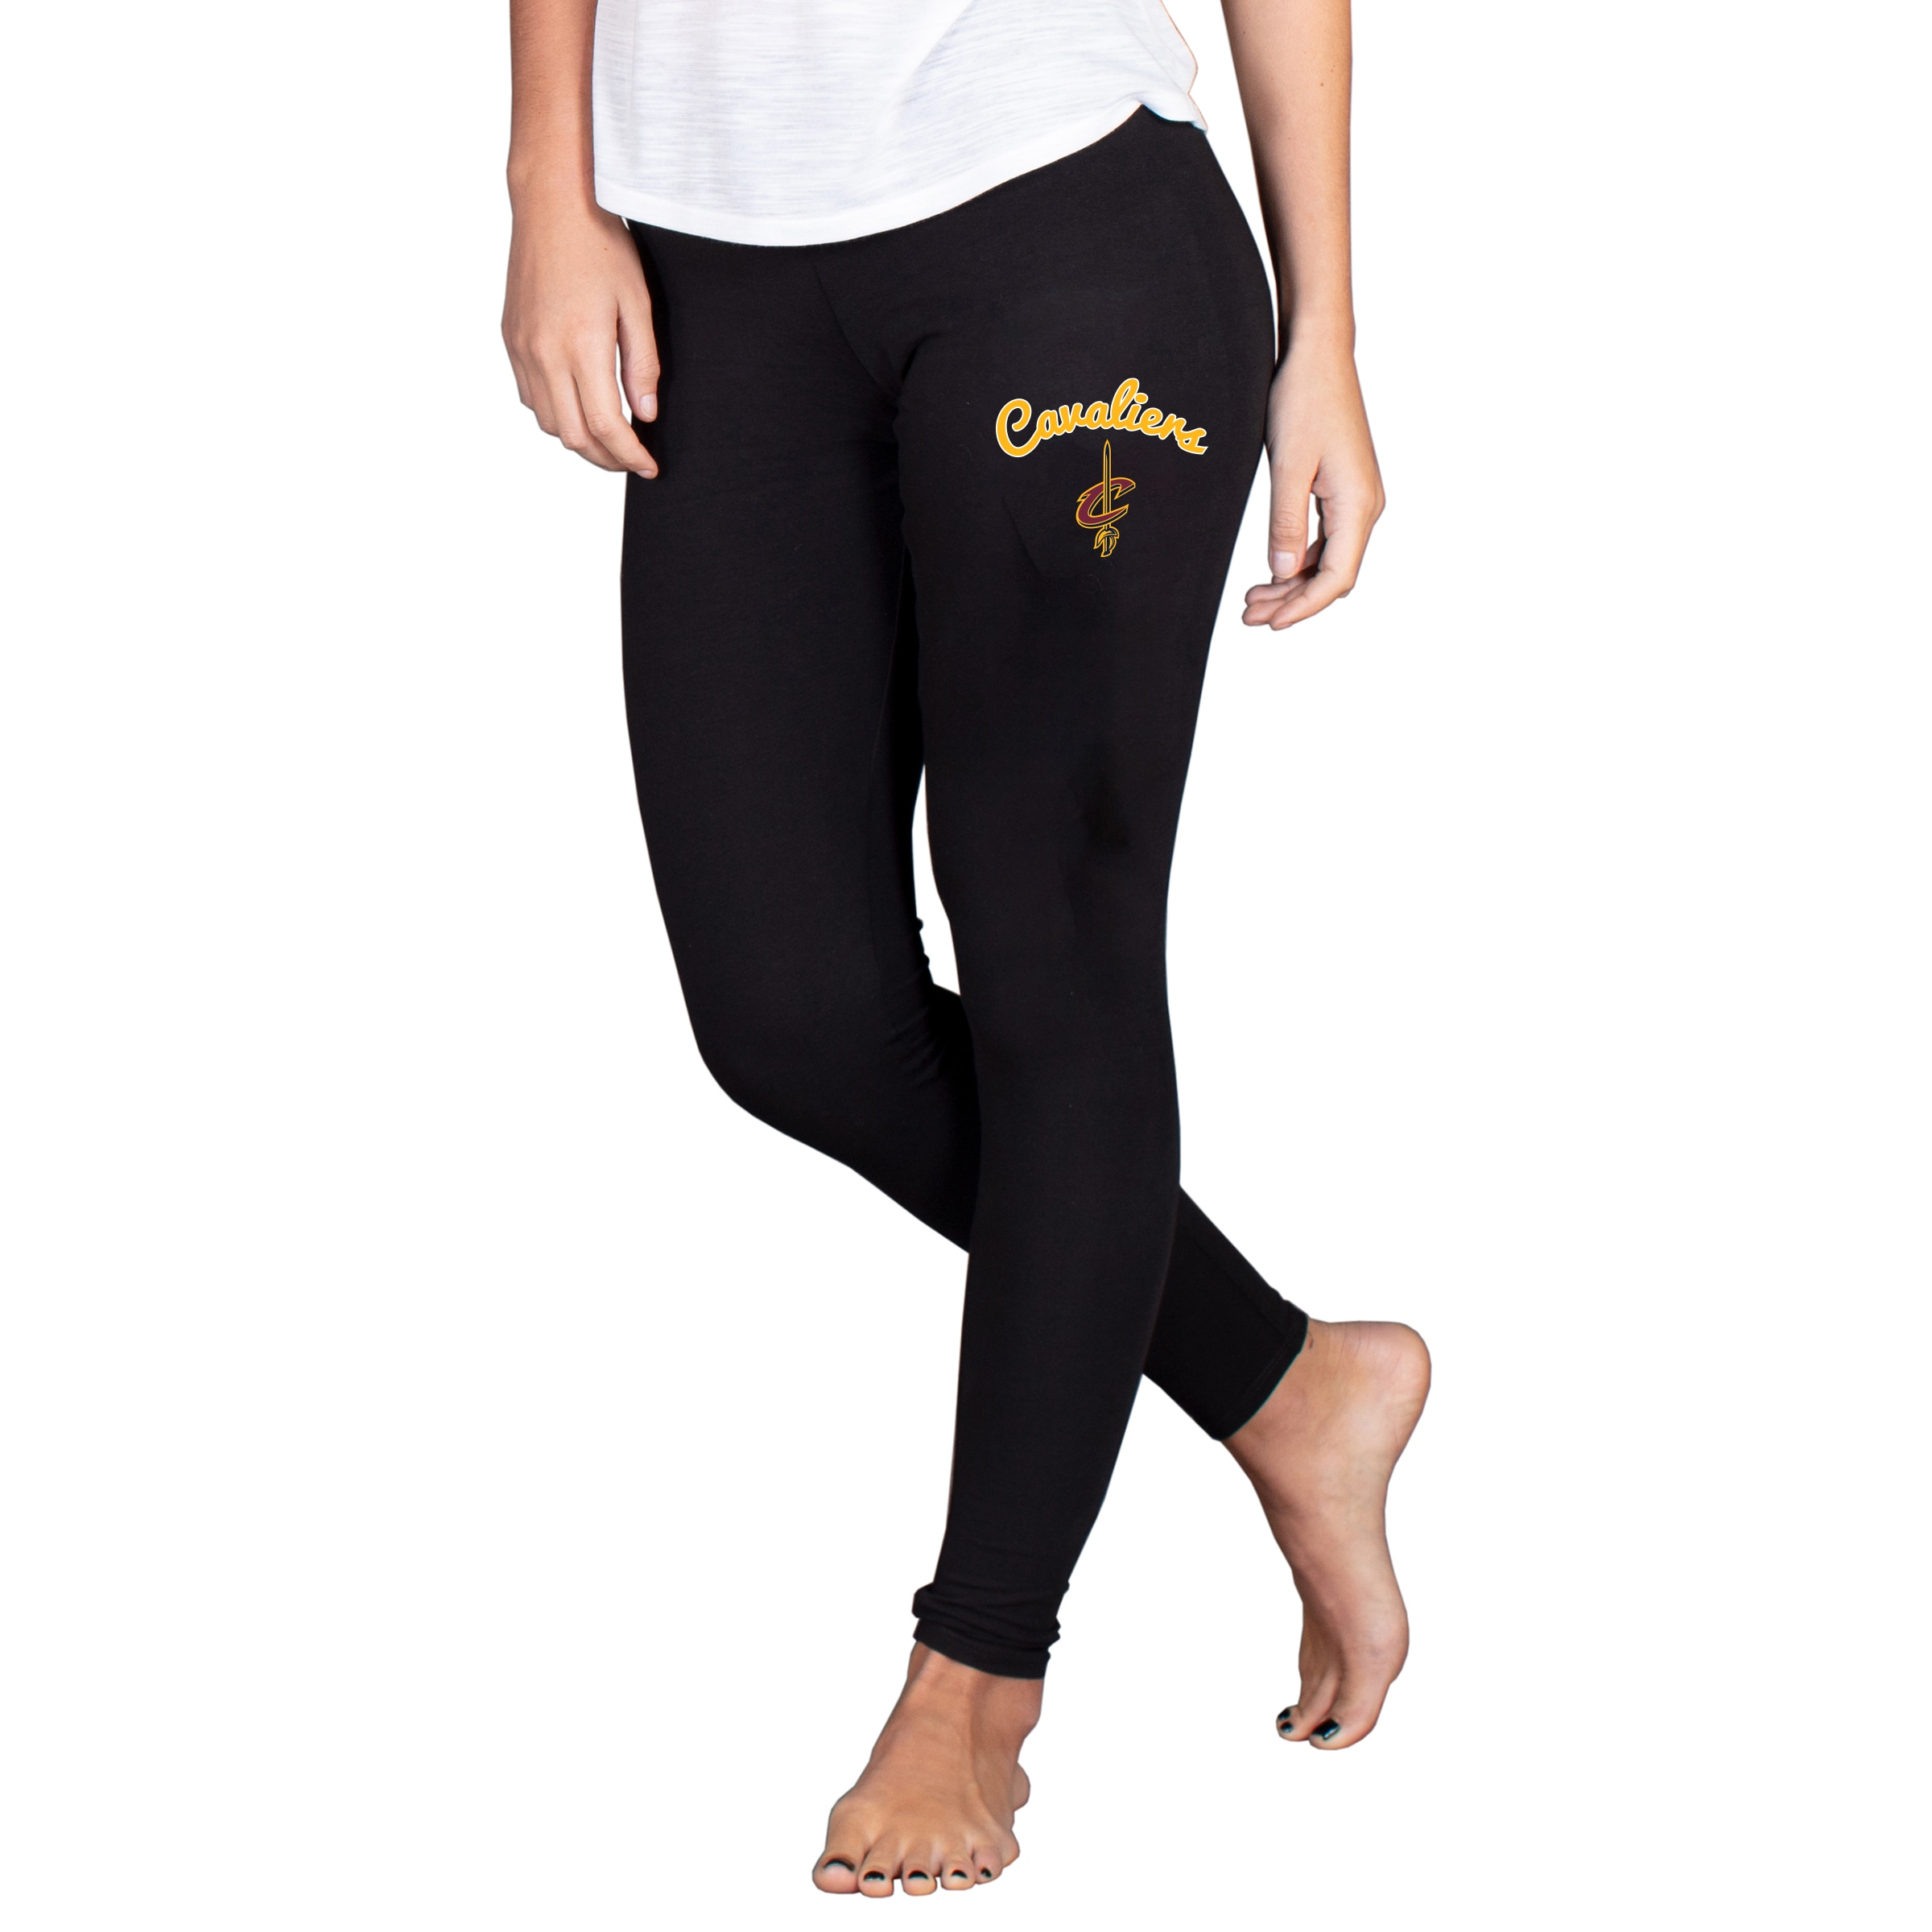 Cleveland Cavaliers Concepts Sport Women's Fraction Leggings - Black